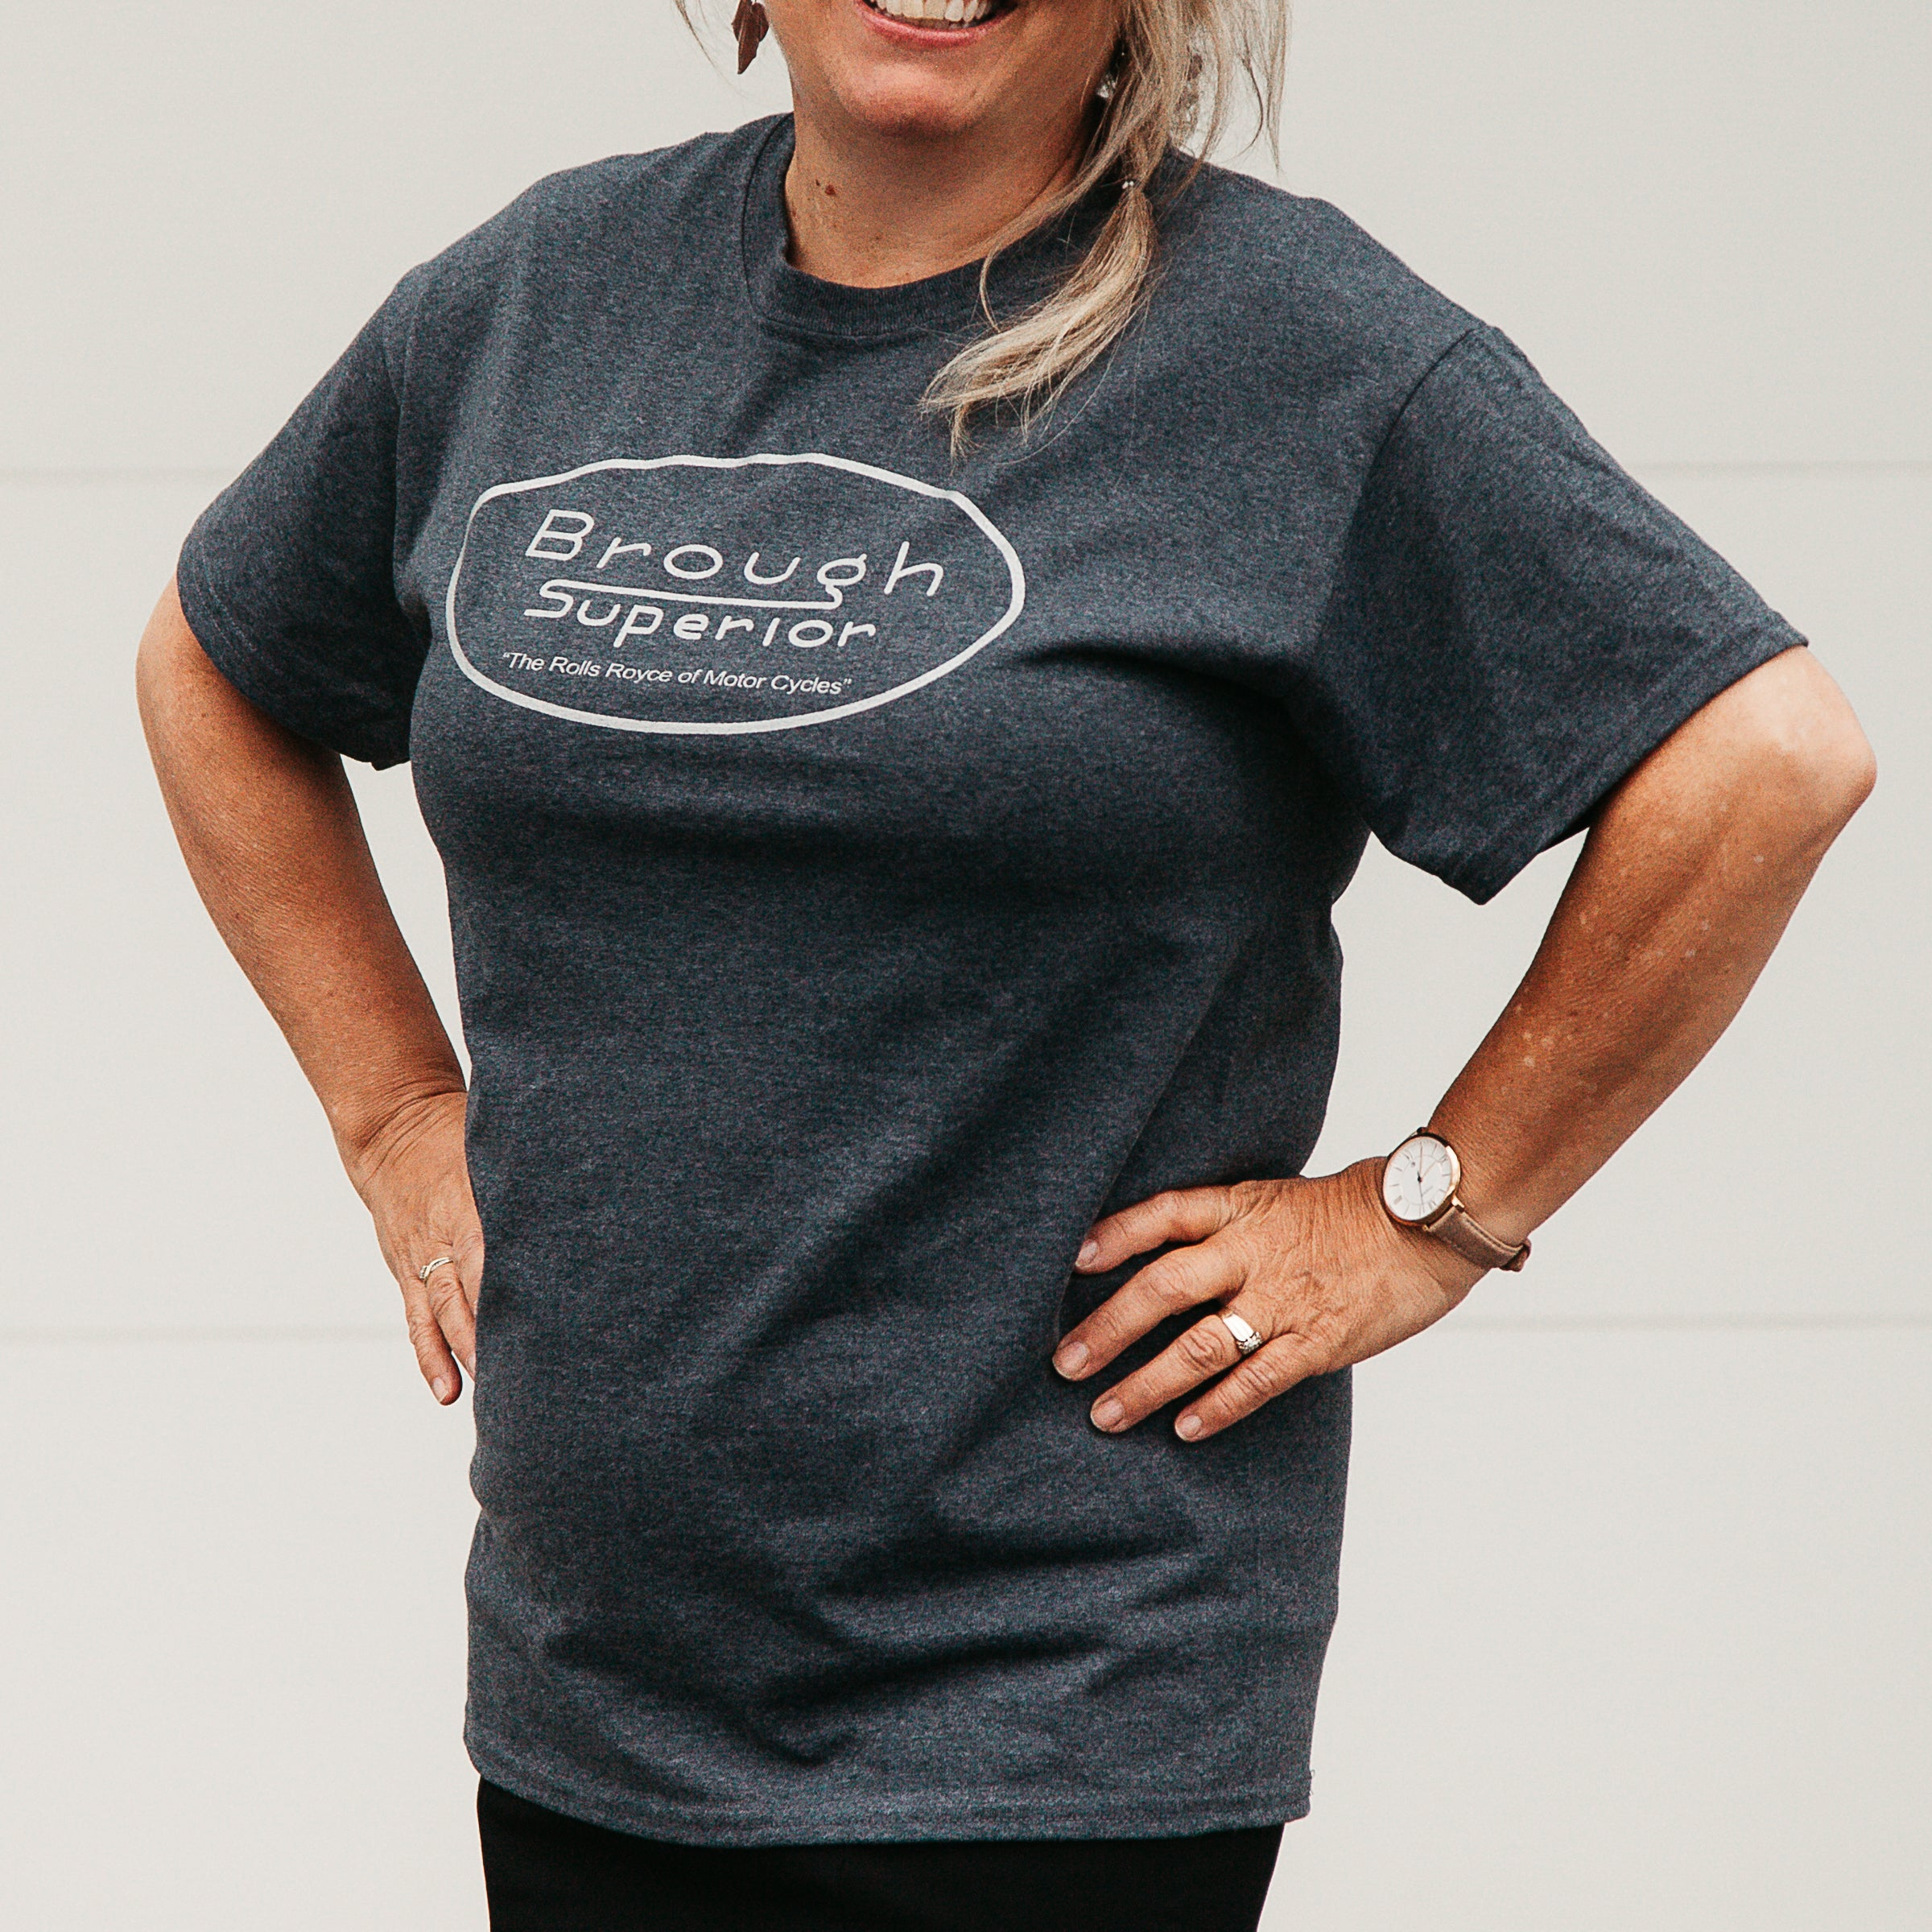 "Dreamcycle Motorcycle Museum |  Closeup of woman wearing tshirt in lifestyle environment with text ""Brough Superior""."